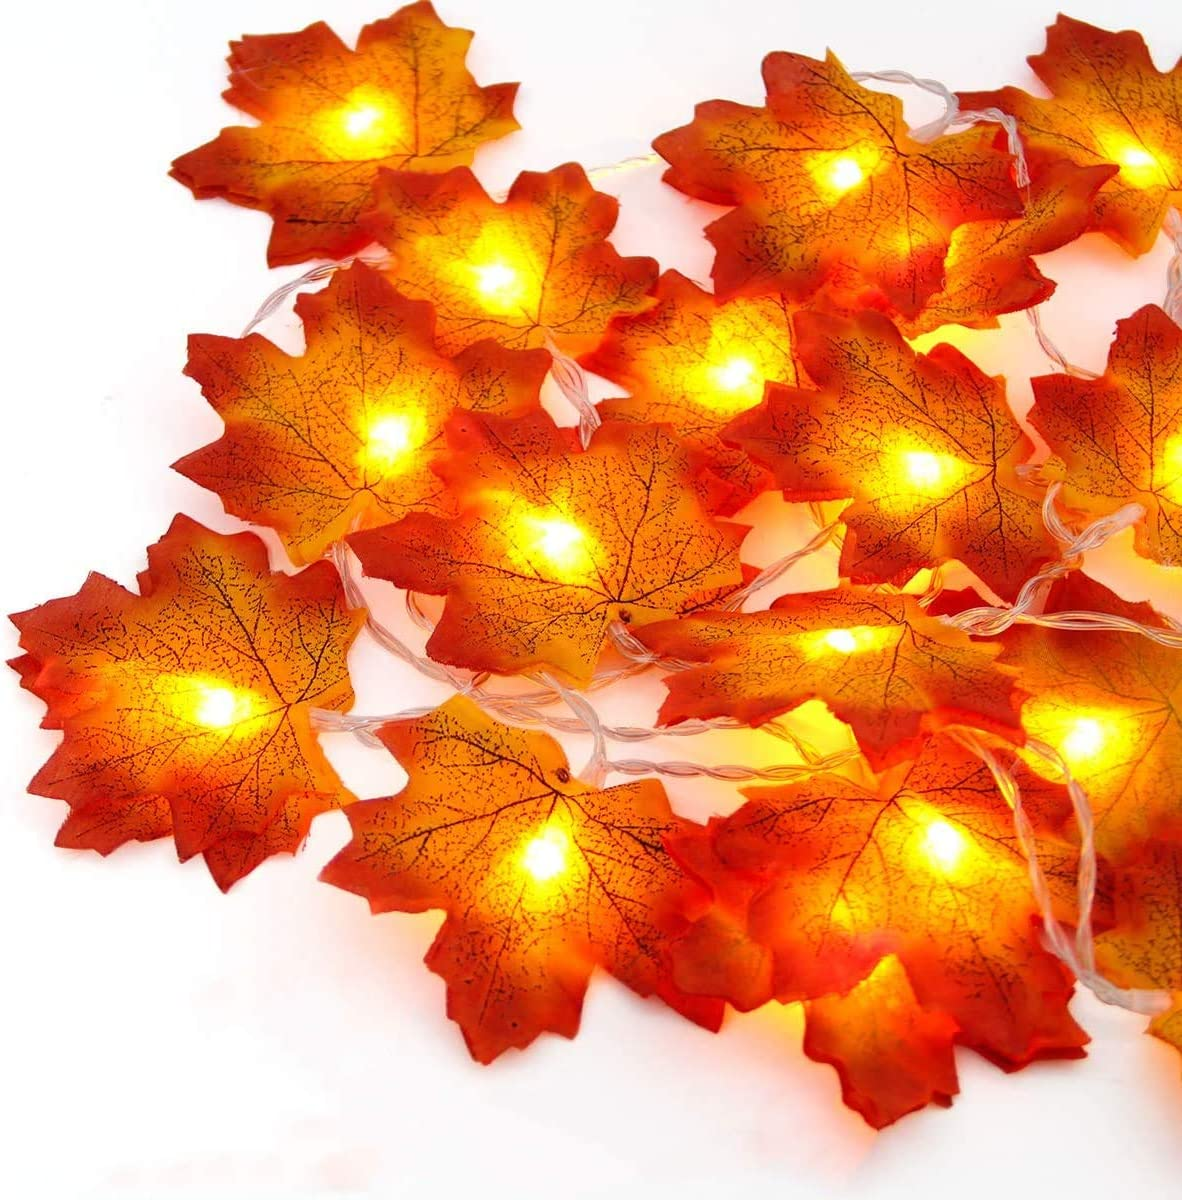 Fall Maple Leaves String Lights,13 Feet 40 LED Waterproof Maple Leaf Garland Lights,3AA Battery Powered Decorations Lights for Indoor Outdoor Autumn Harvest Thanksgiving Christmas Decor